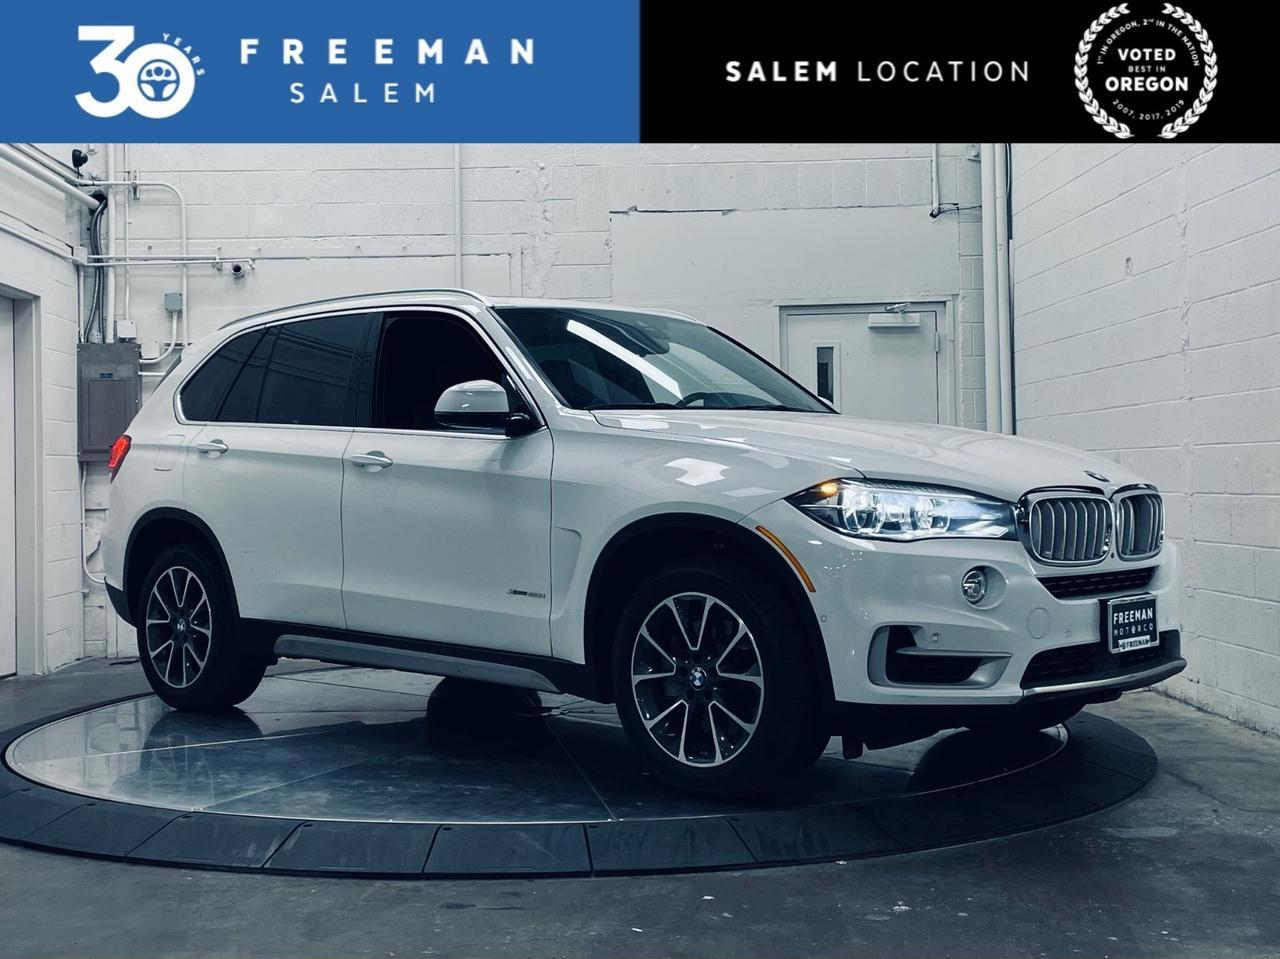 2018 BMW X5 xDrive50i Executive Package Blind Spot Detection Salem OR